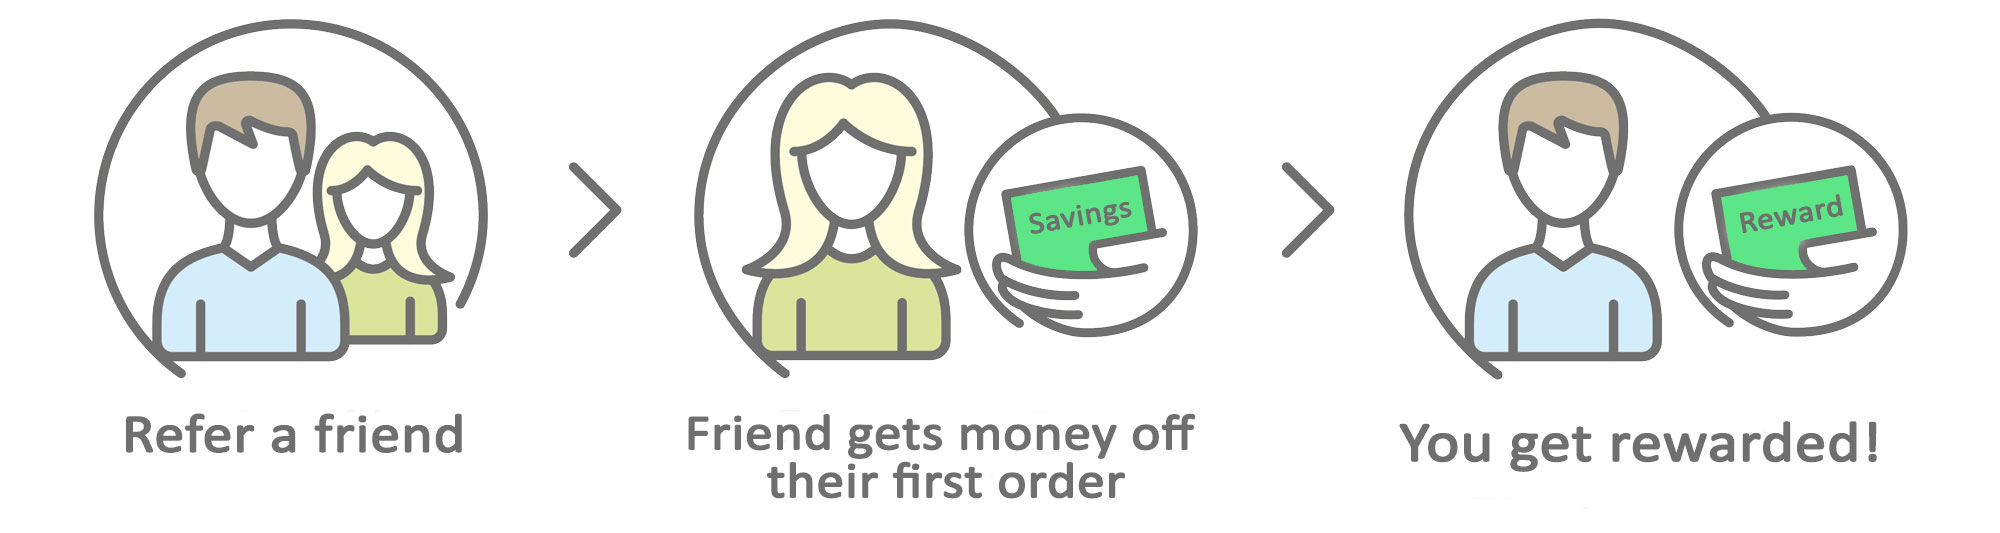 Refer A Friend Infographic